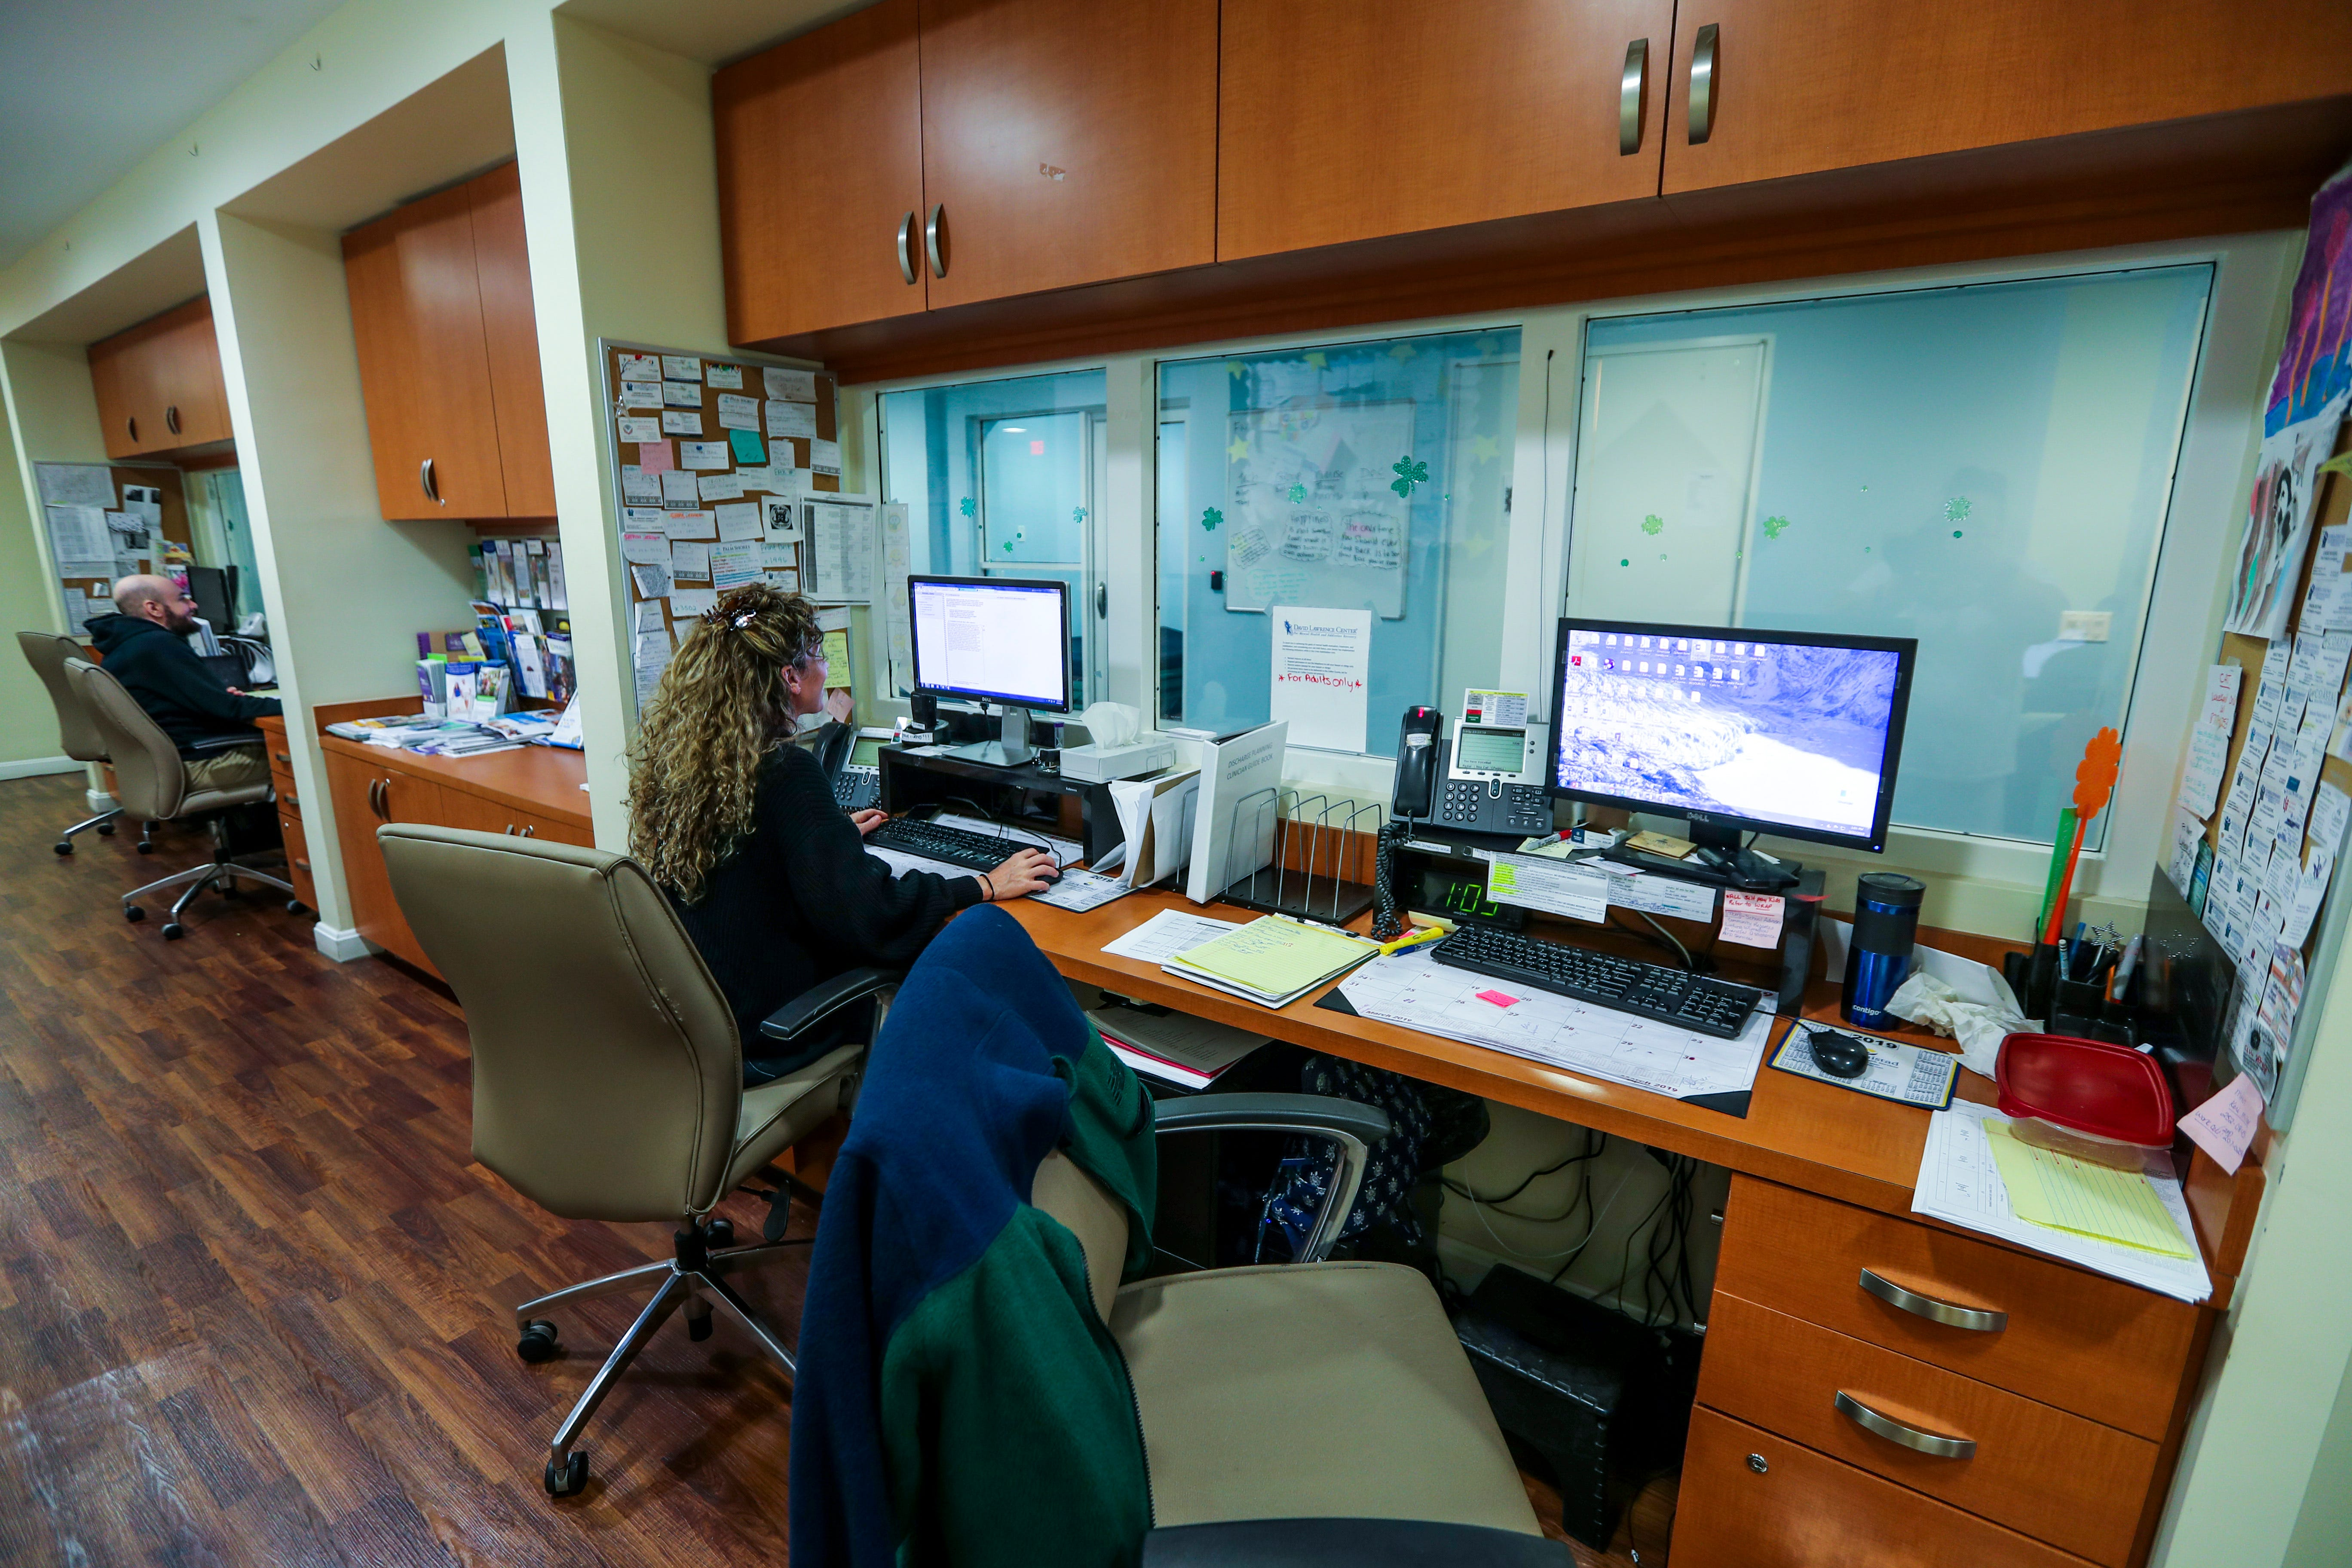 Nurses stations just outside the Children's Crisis Unit. David Lawrence Center in Naples takes in both children and adults. Most of their patients have been baker acted. There are bedrooms, a room used for art and a common area. There is a small outdoors area to hang in as well.